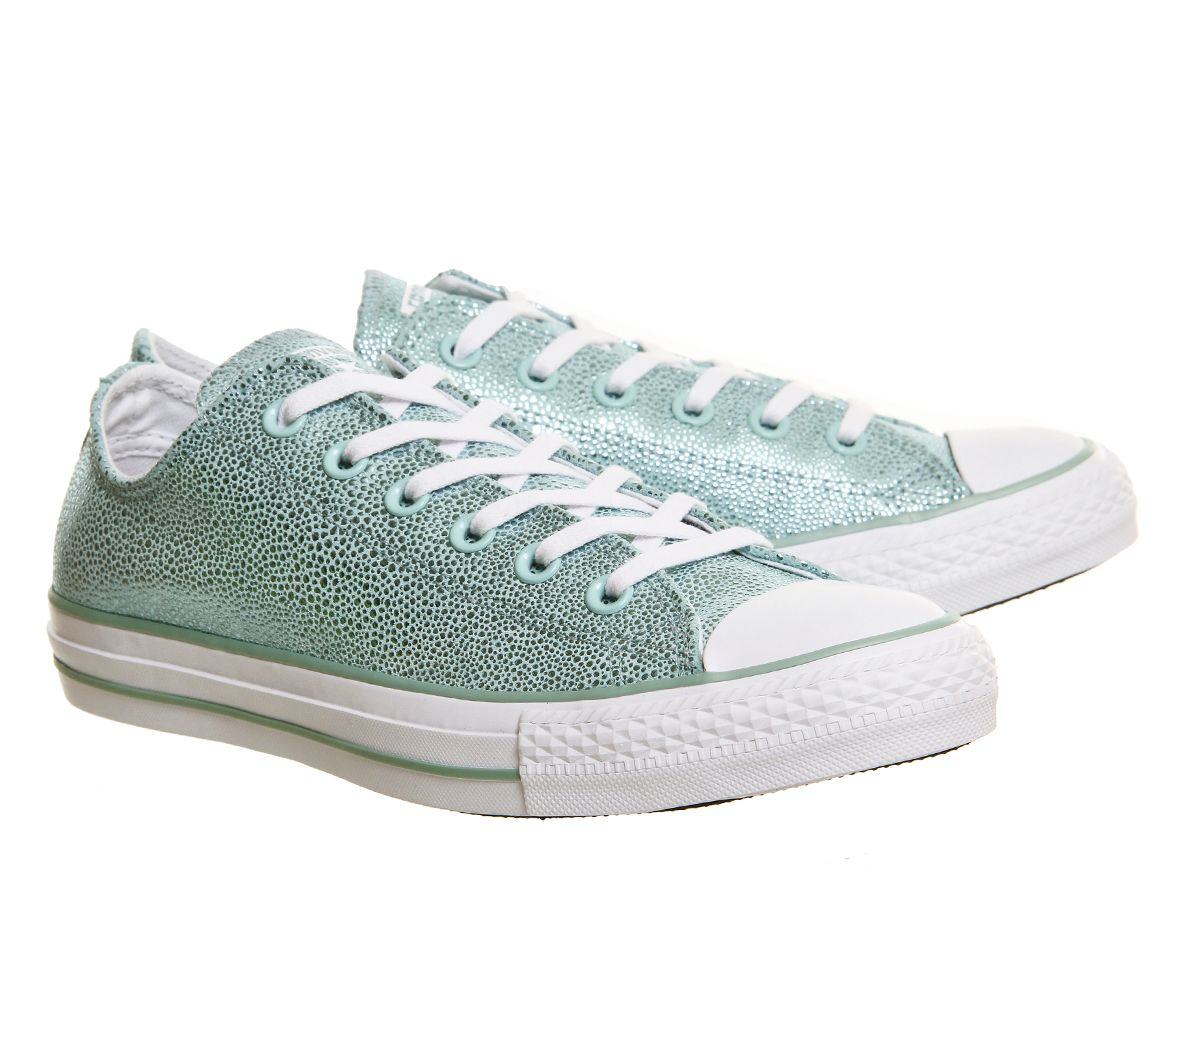 Converse Rubber All Star Low Trainers in Metallic